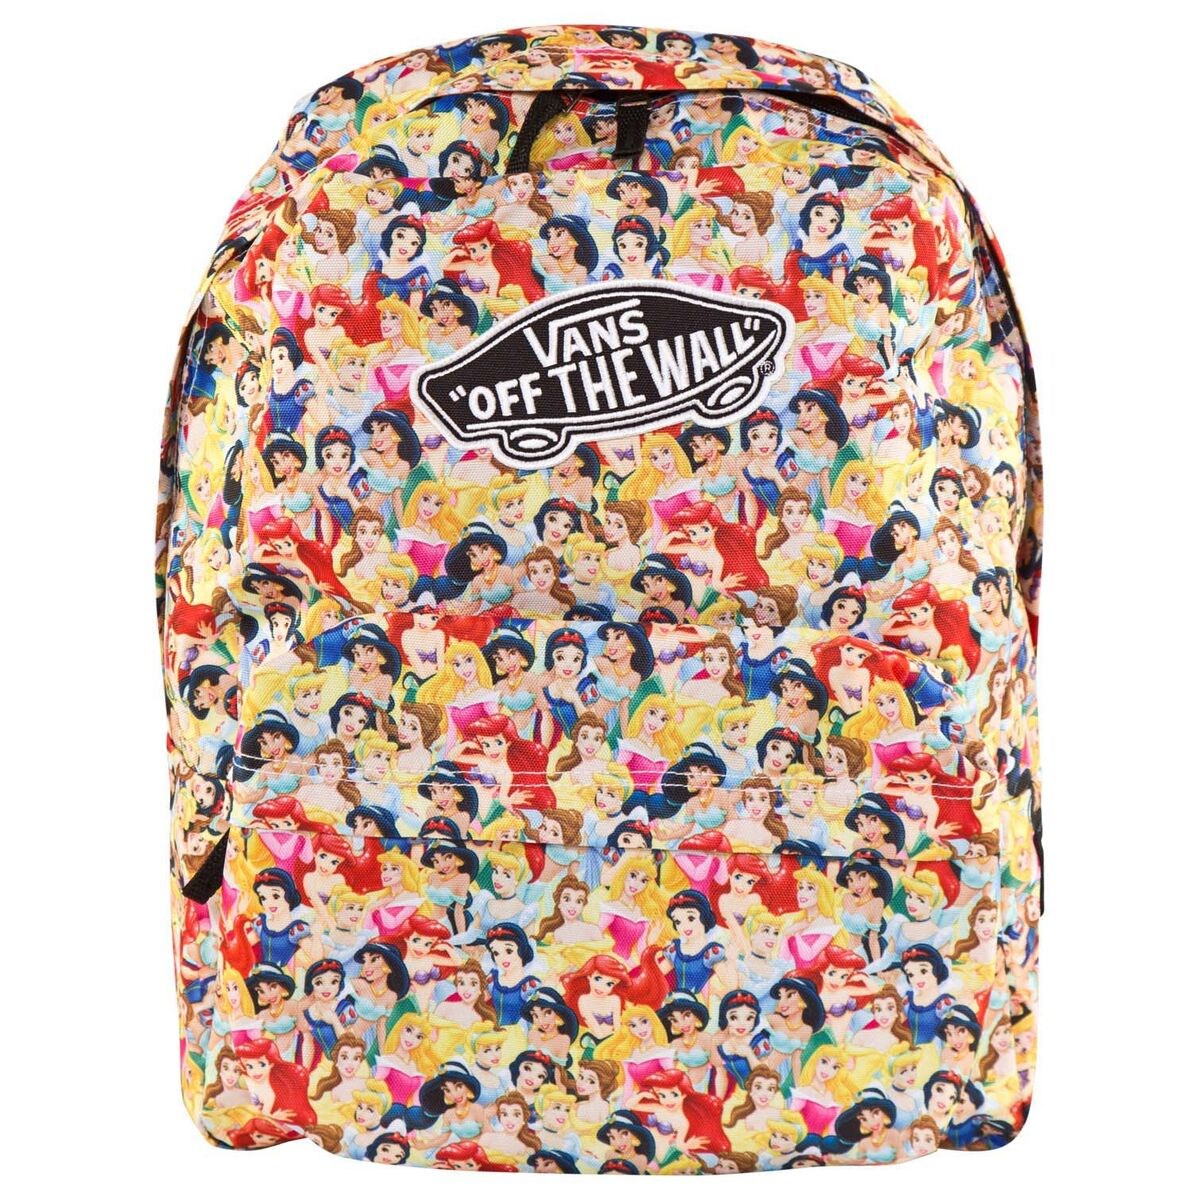 79c045dc46 Vans Disney Princess Backpack